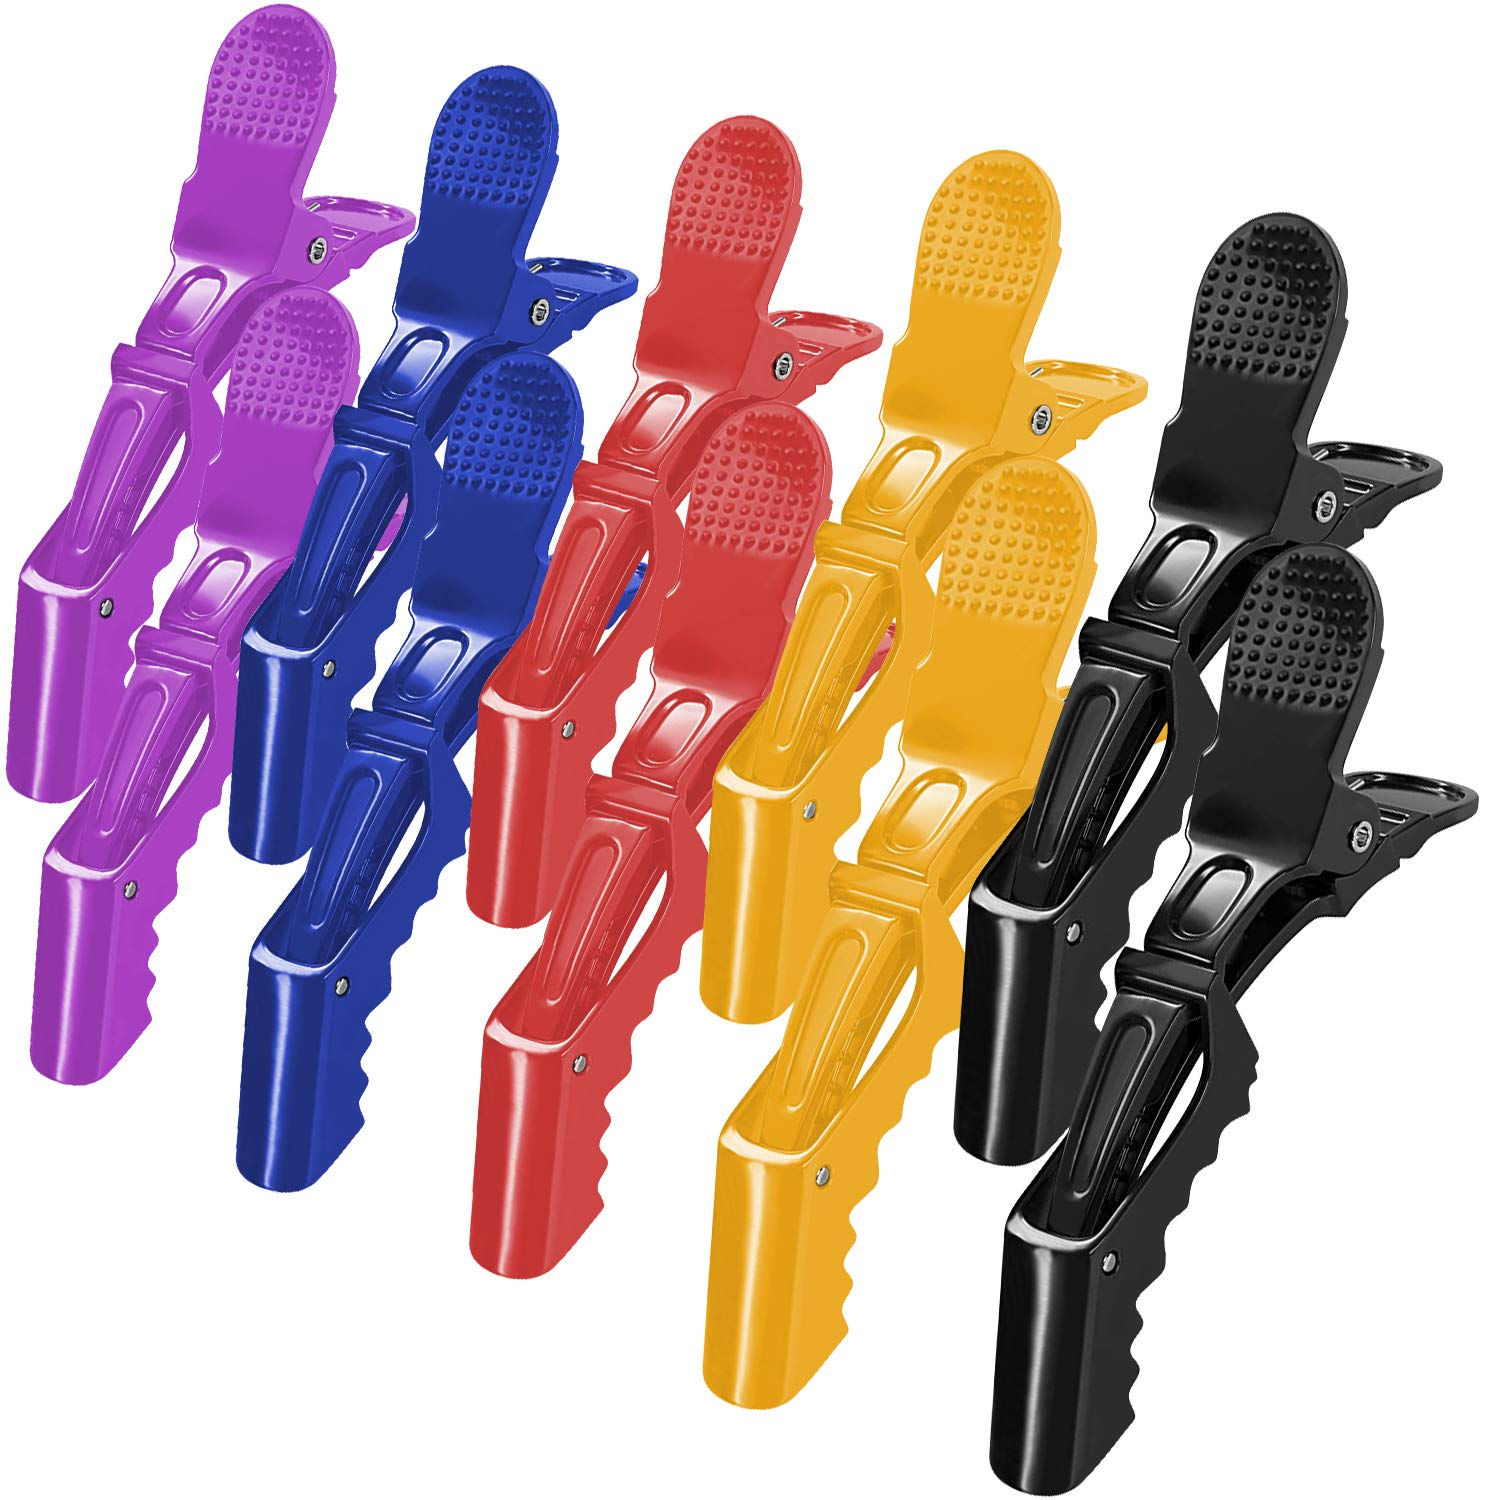 Details about  /6//12PCS Salon Croc Hair Styling Clips-Sectioning Alligator Hair Clip Plastic